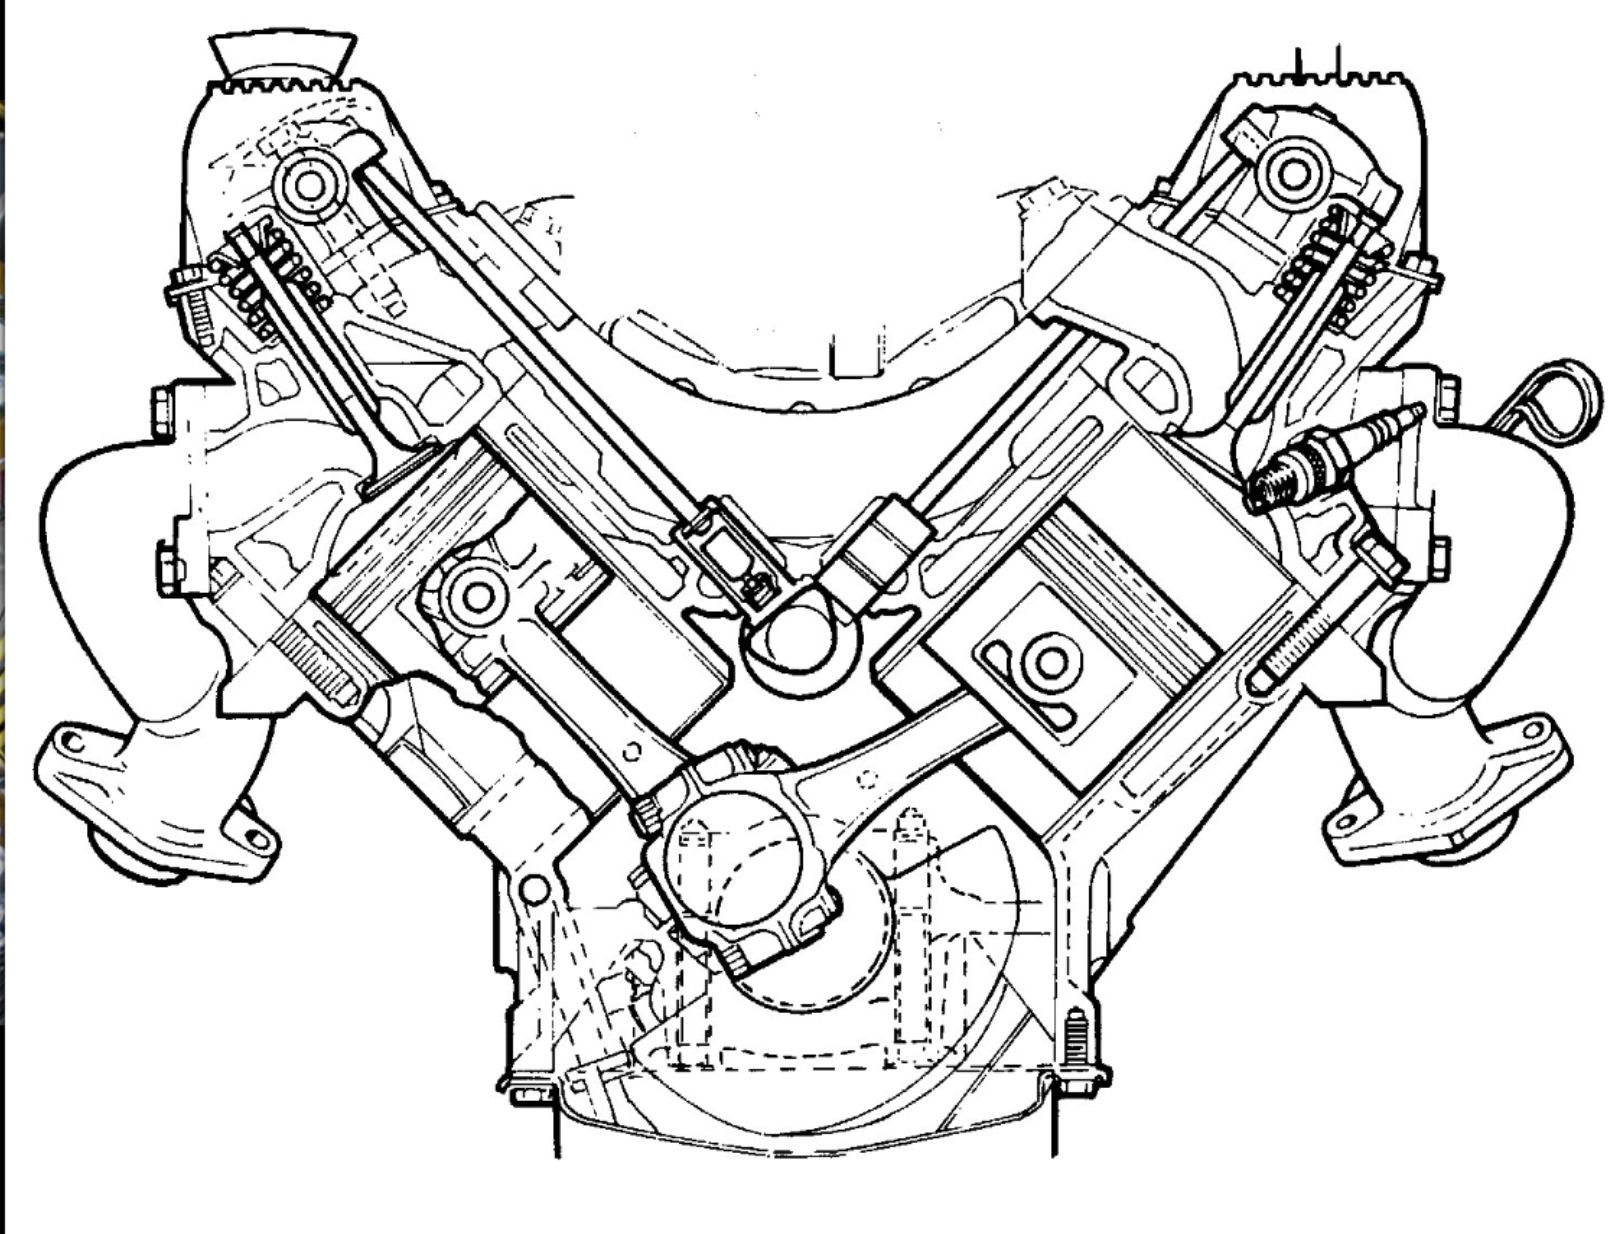 hight resolution of a sectional view of the rover v8 engine a masterpiece of design